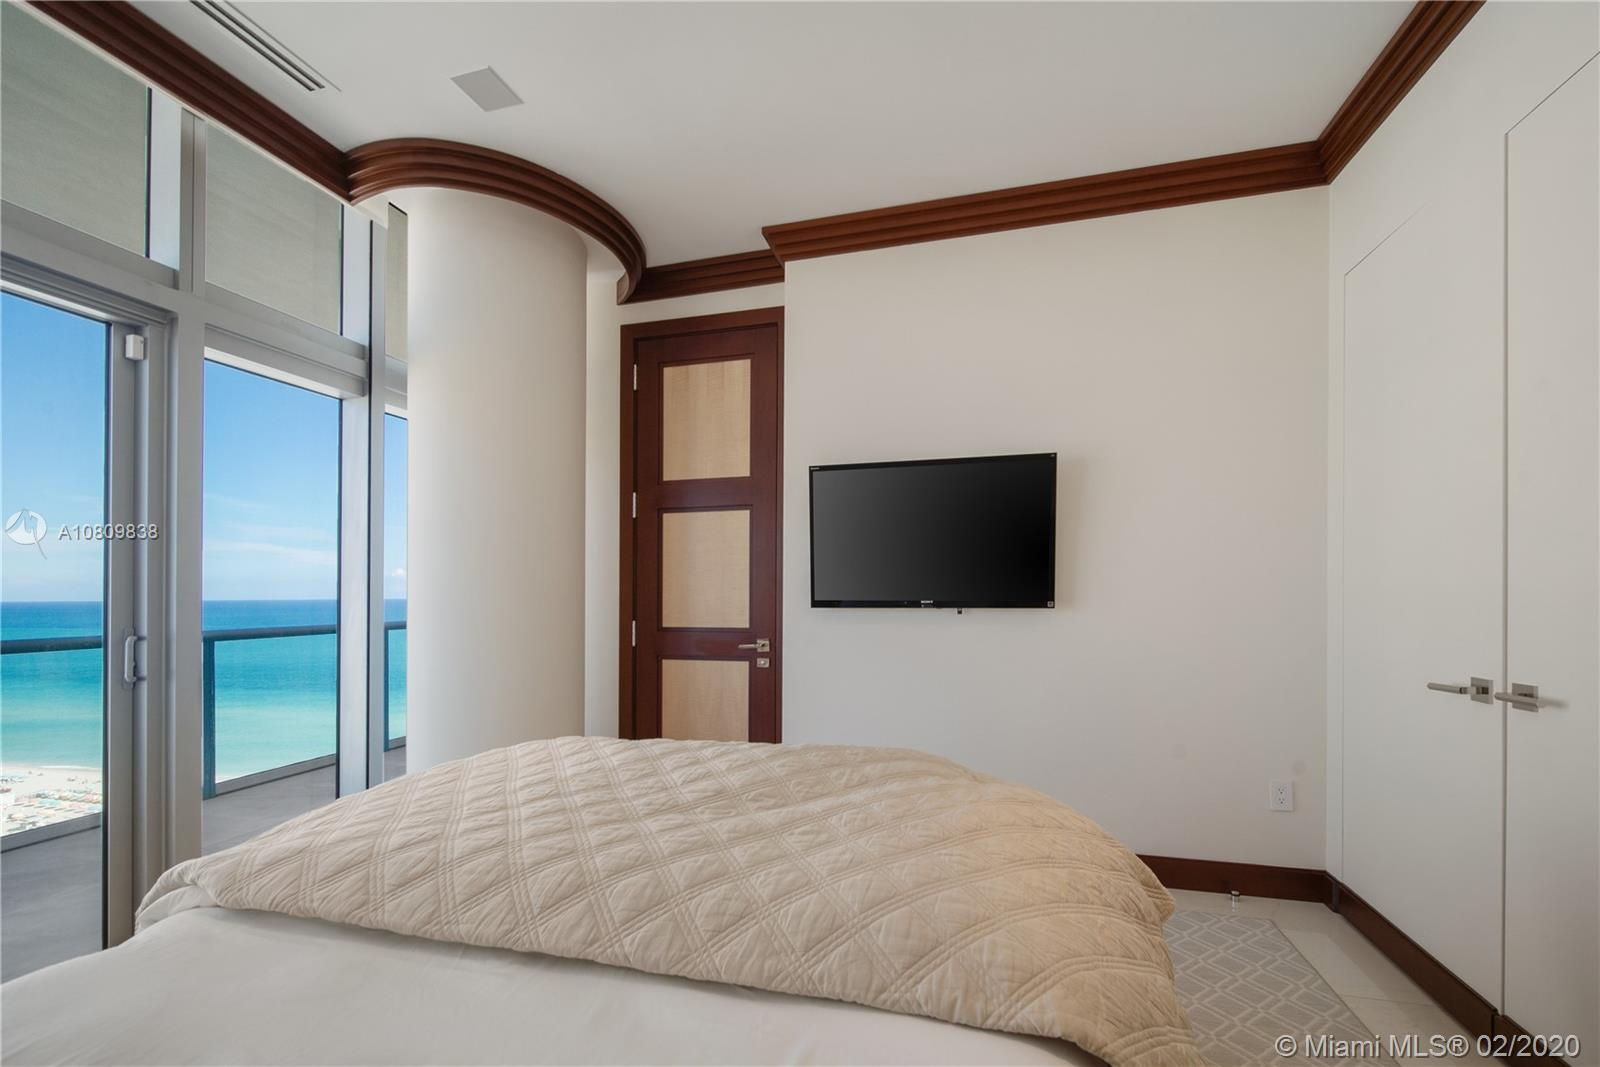 Photo of The Caribbean Condo Apt PH-4